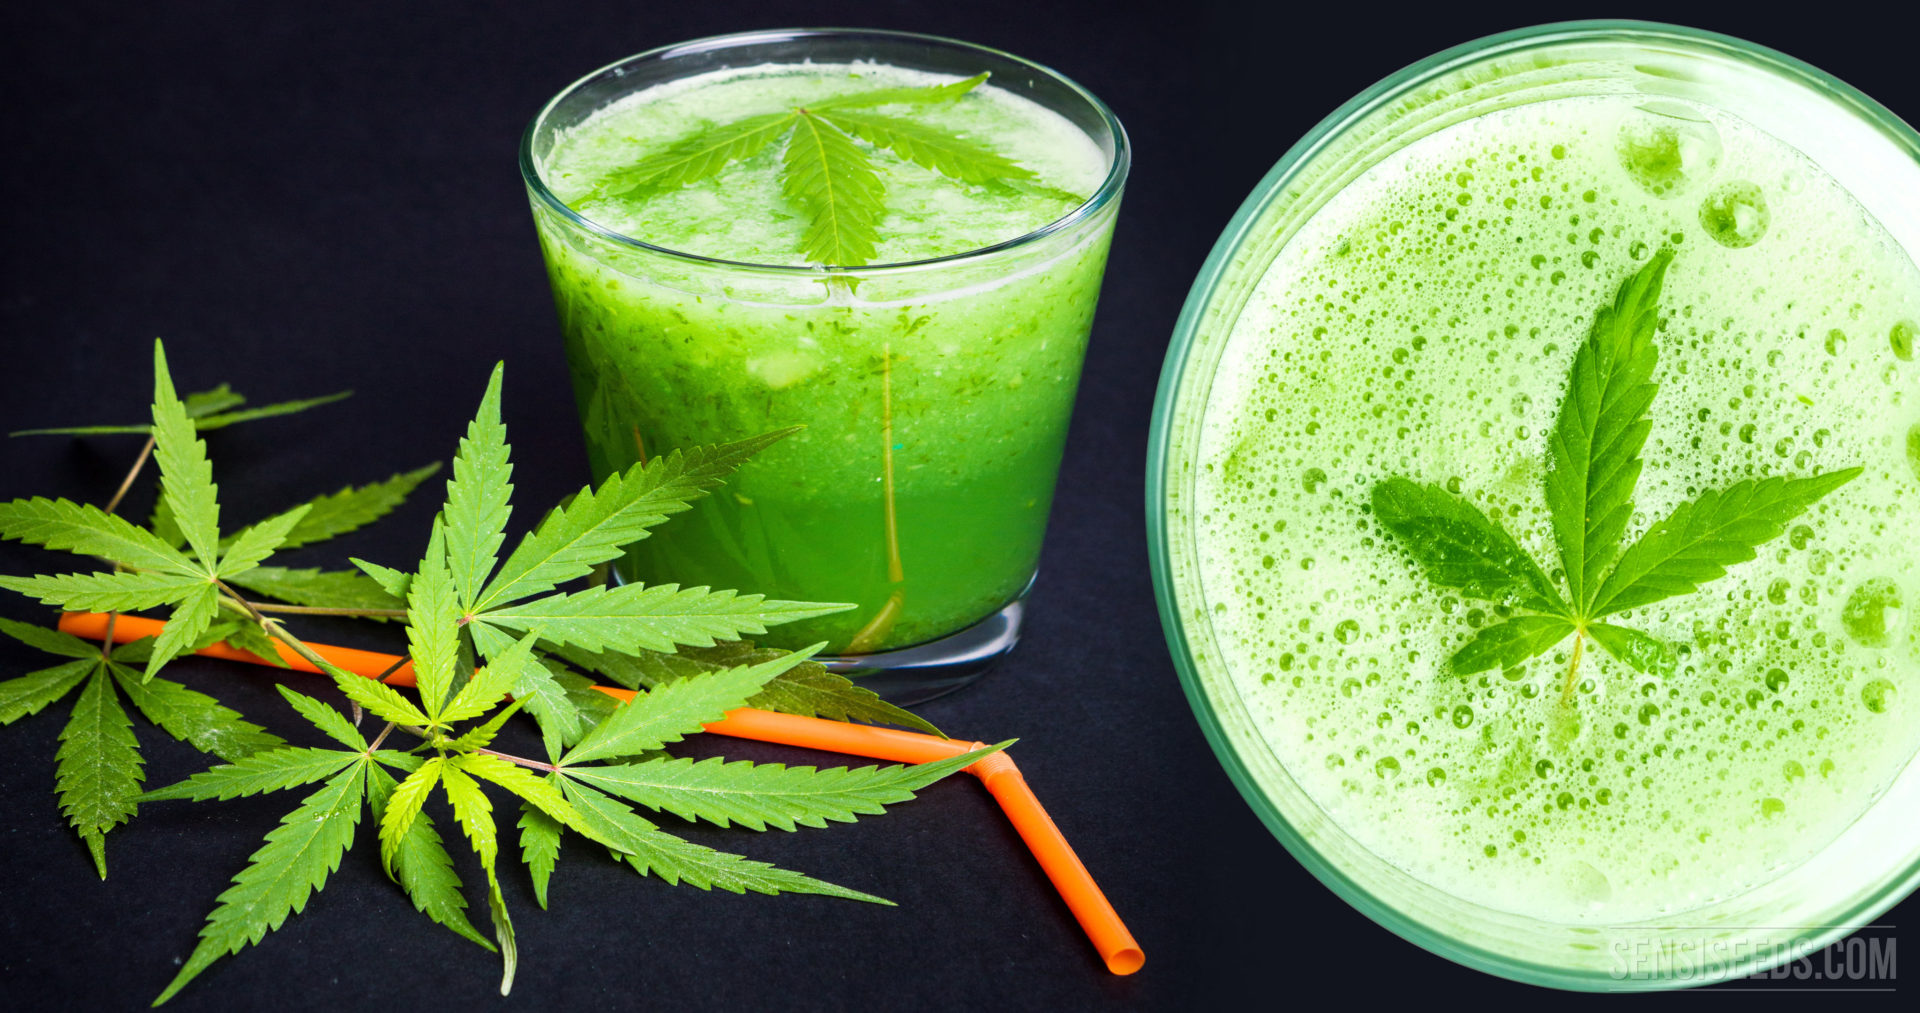 How Exactly Does Cannabis Juice Work?